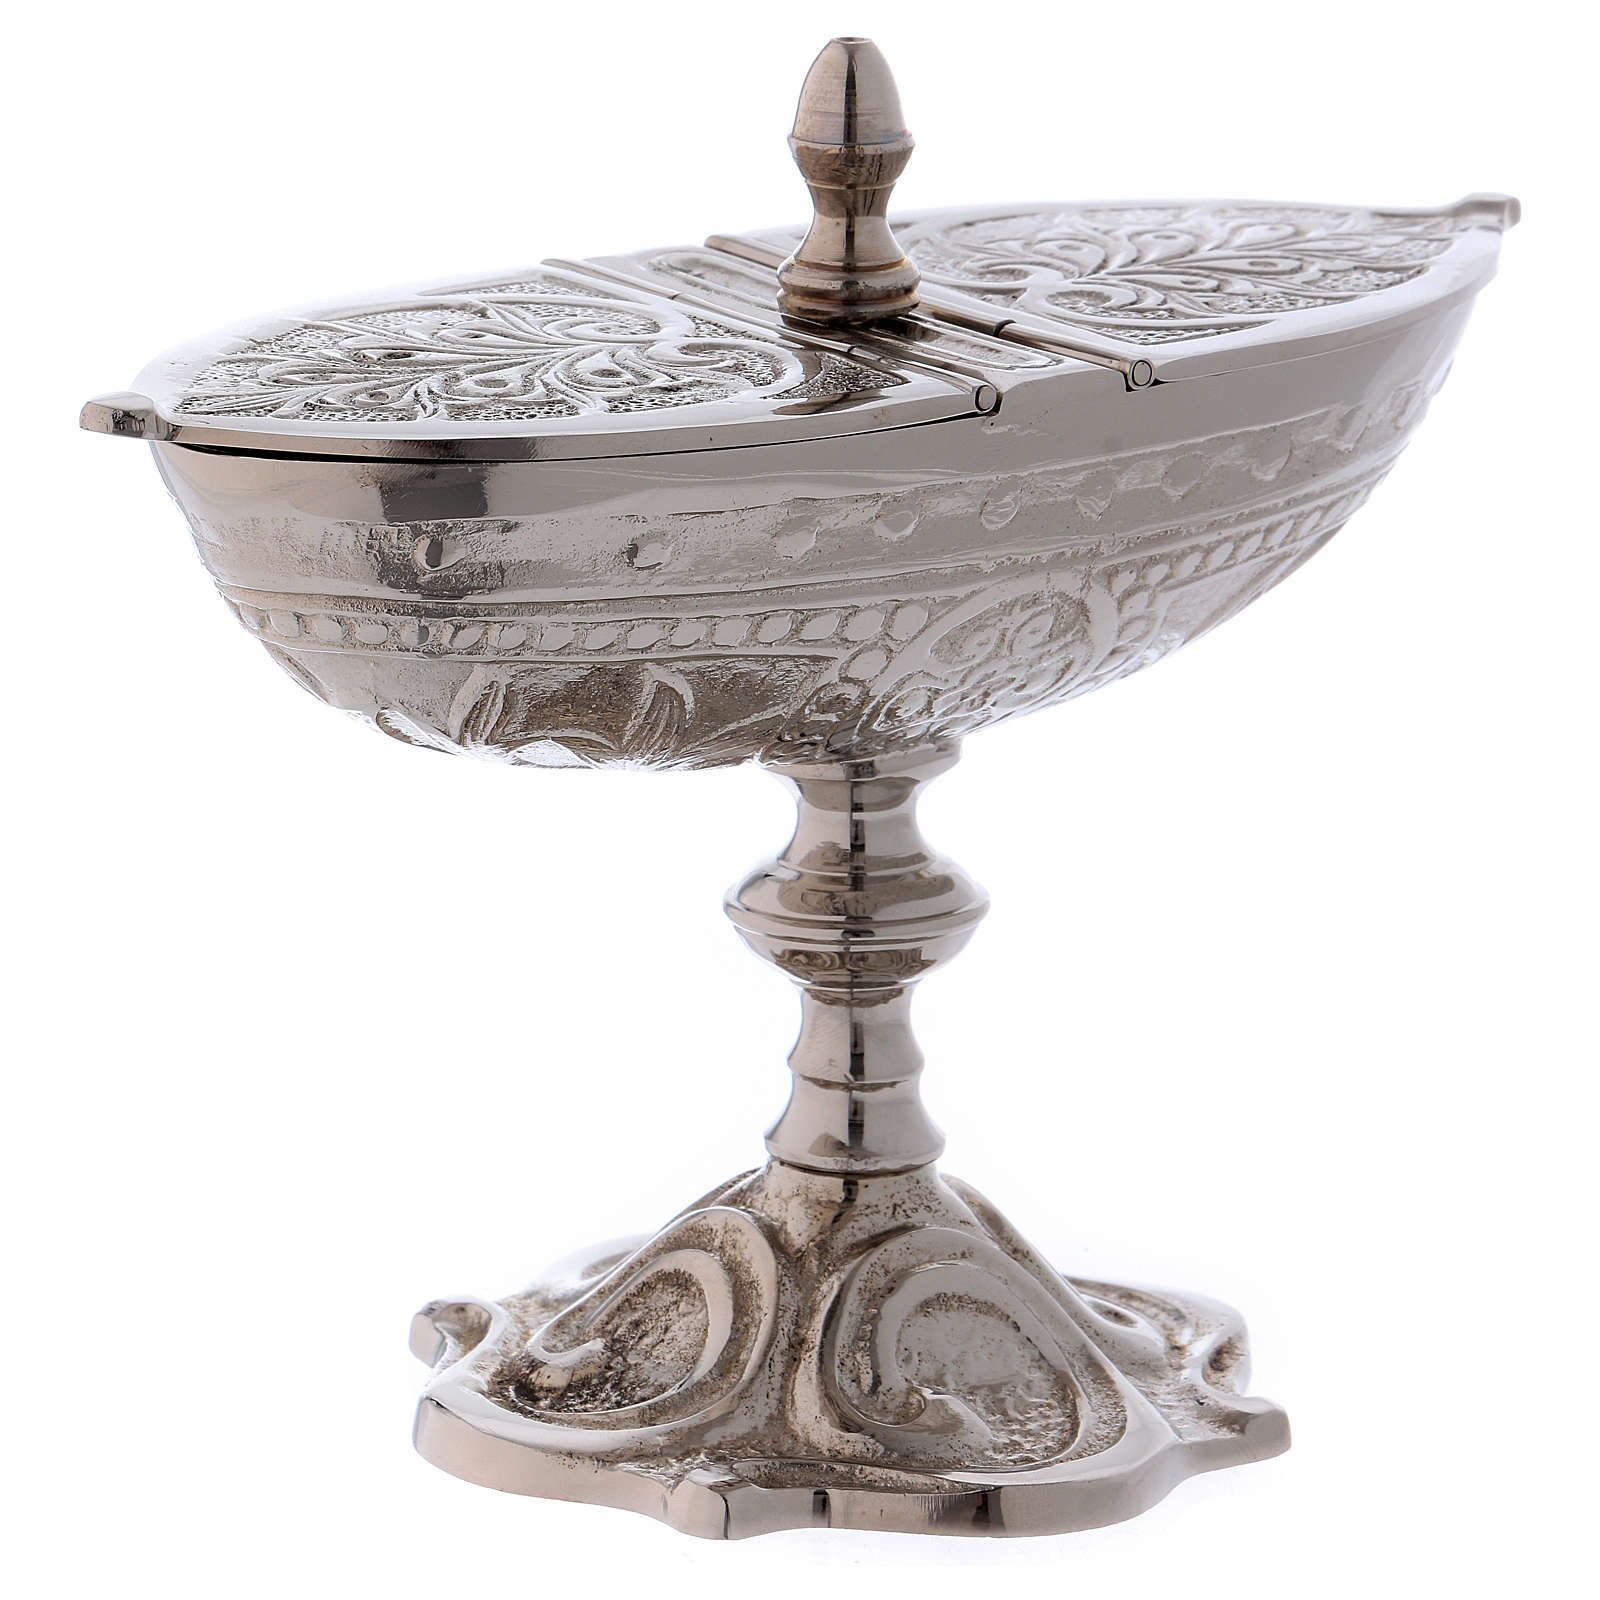 Classic-style censer in silver-plated brass 3